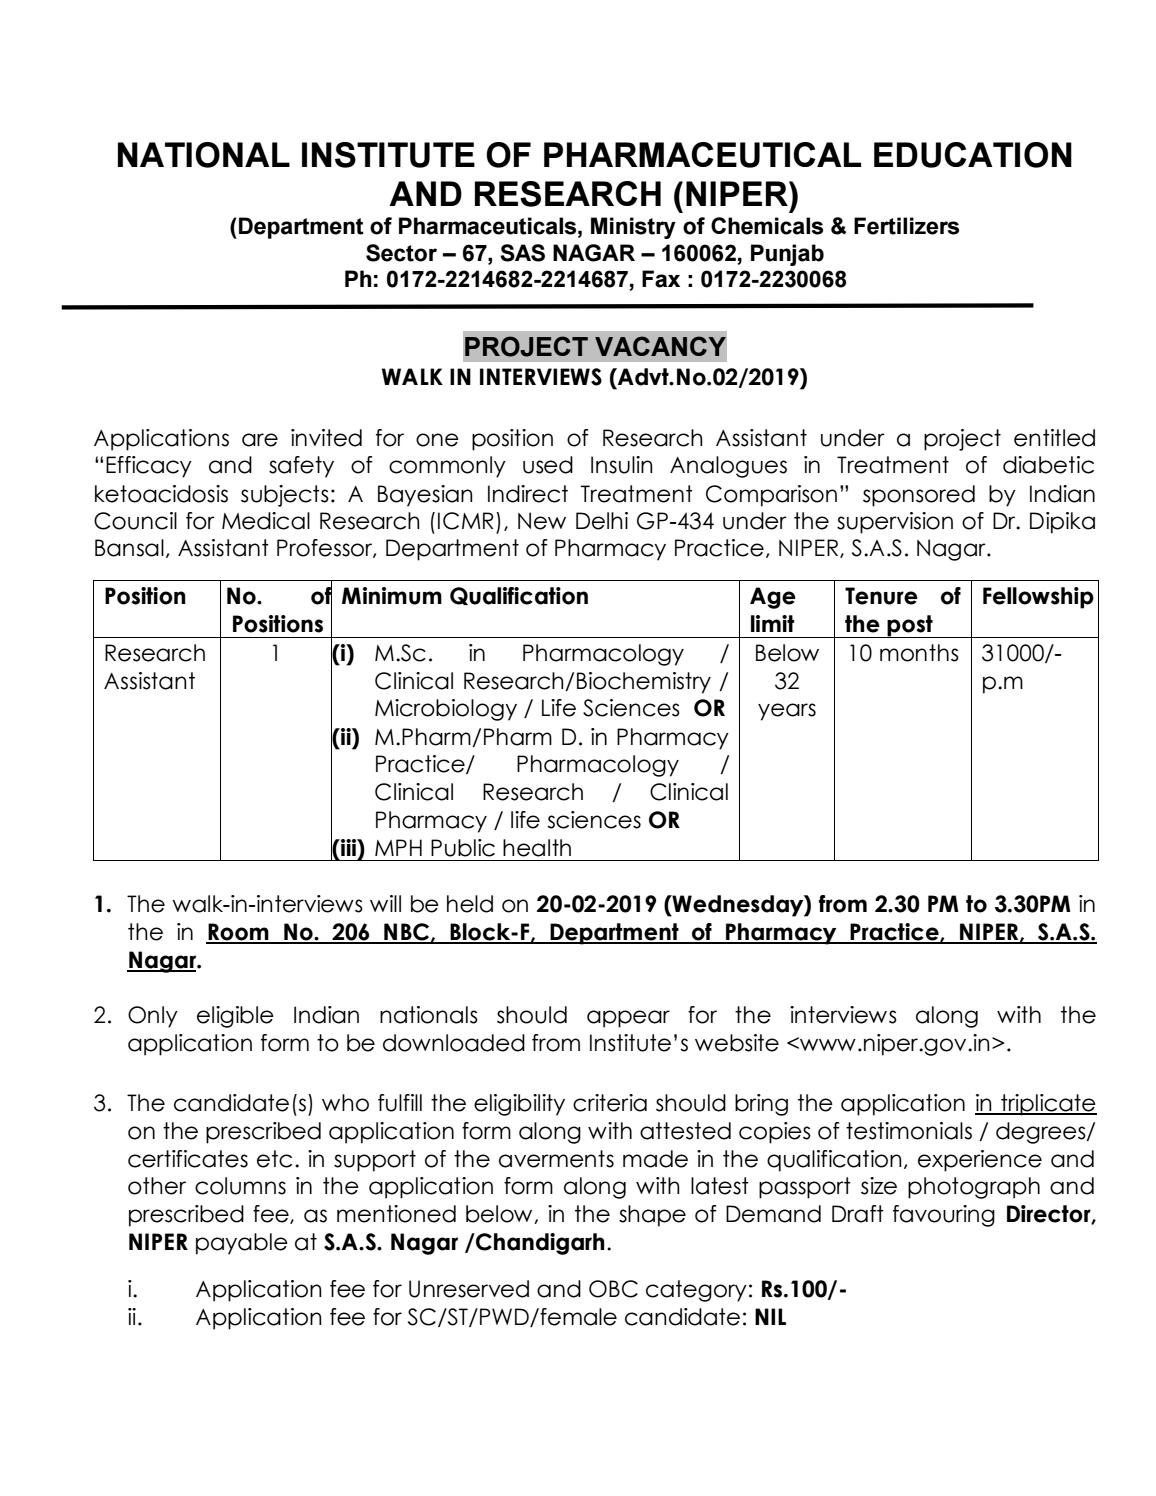 Pharma Jobs @ NIPER | Research Assistant Post Available by